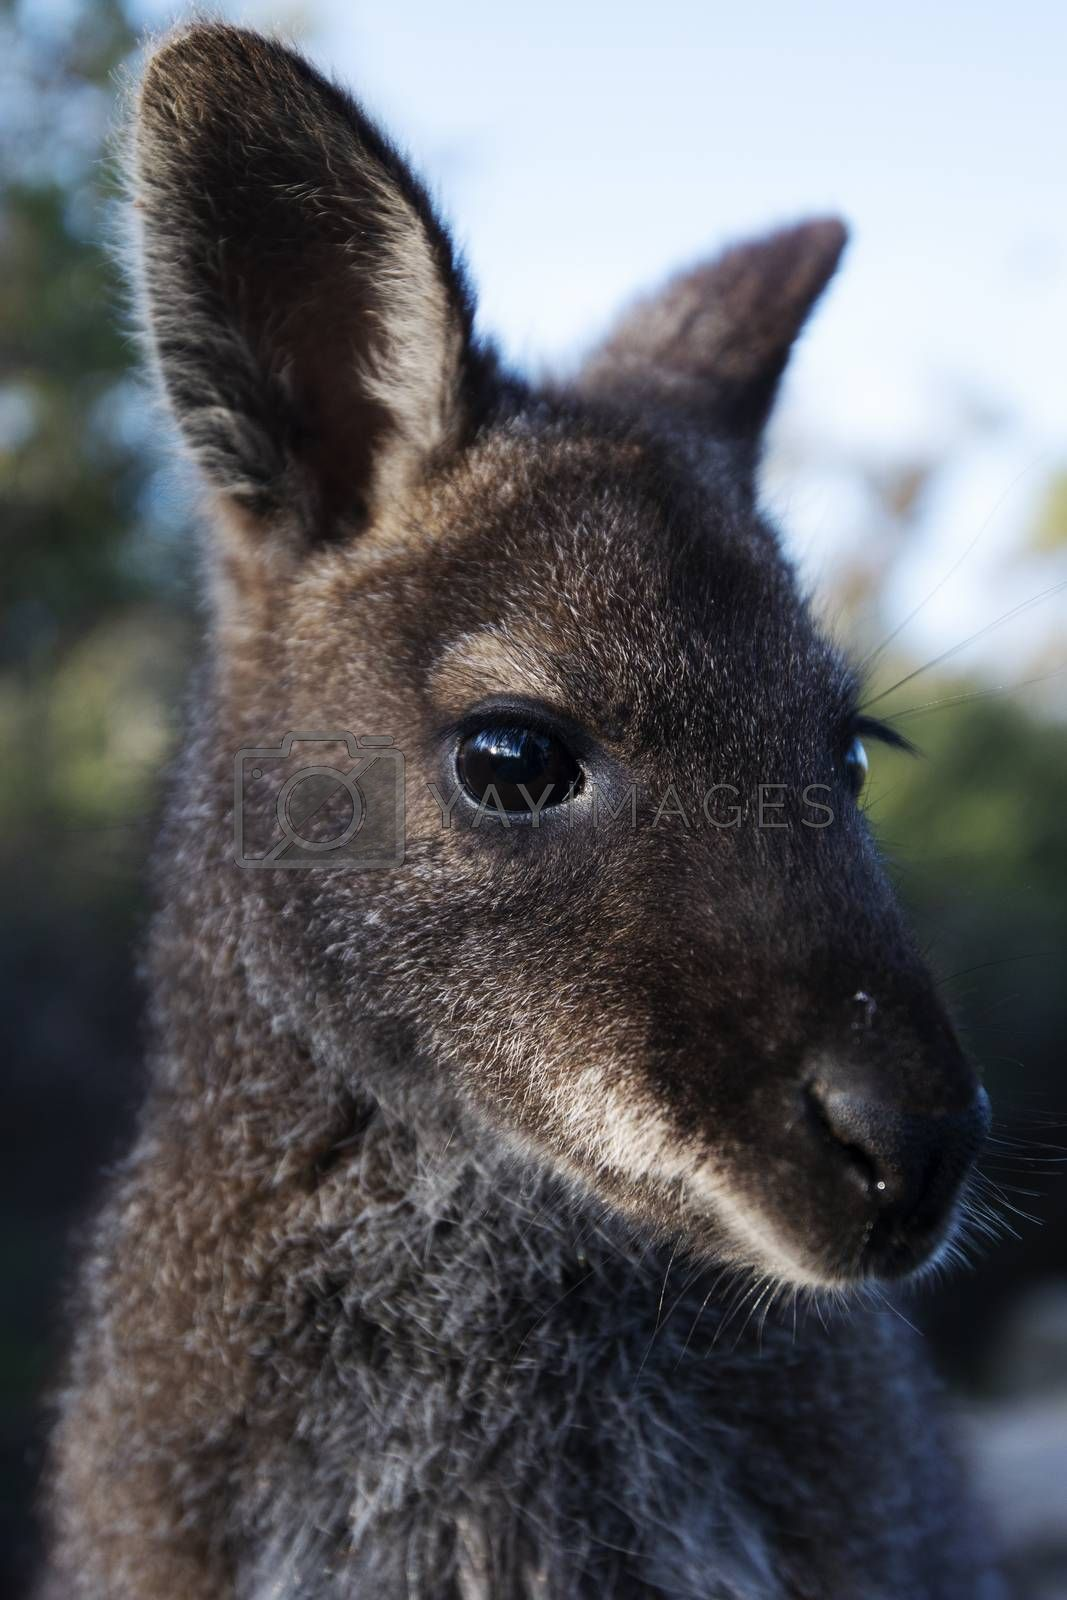 Closeup of an Australian bush wallaby outdoors during the day.